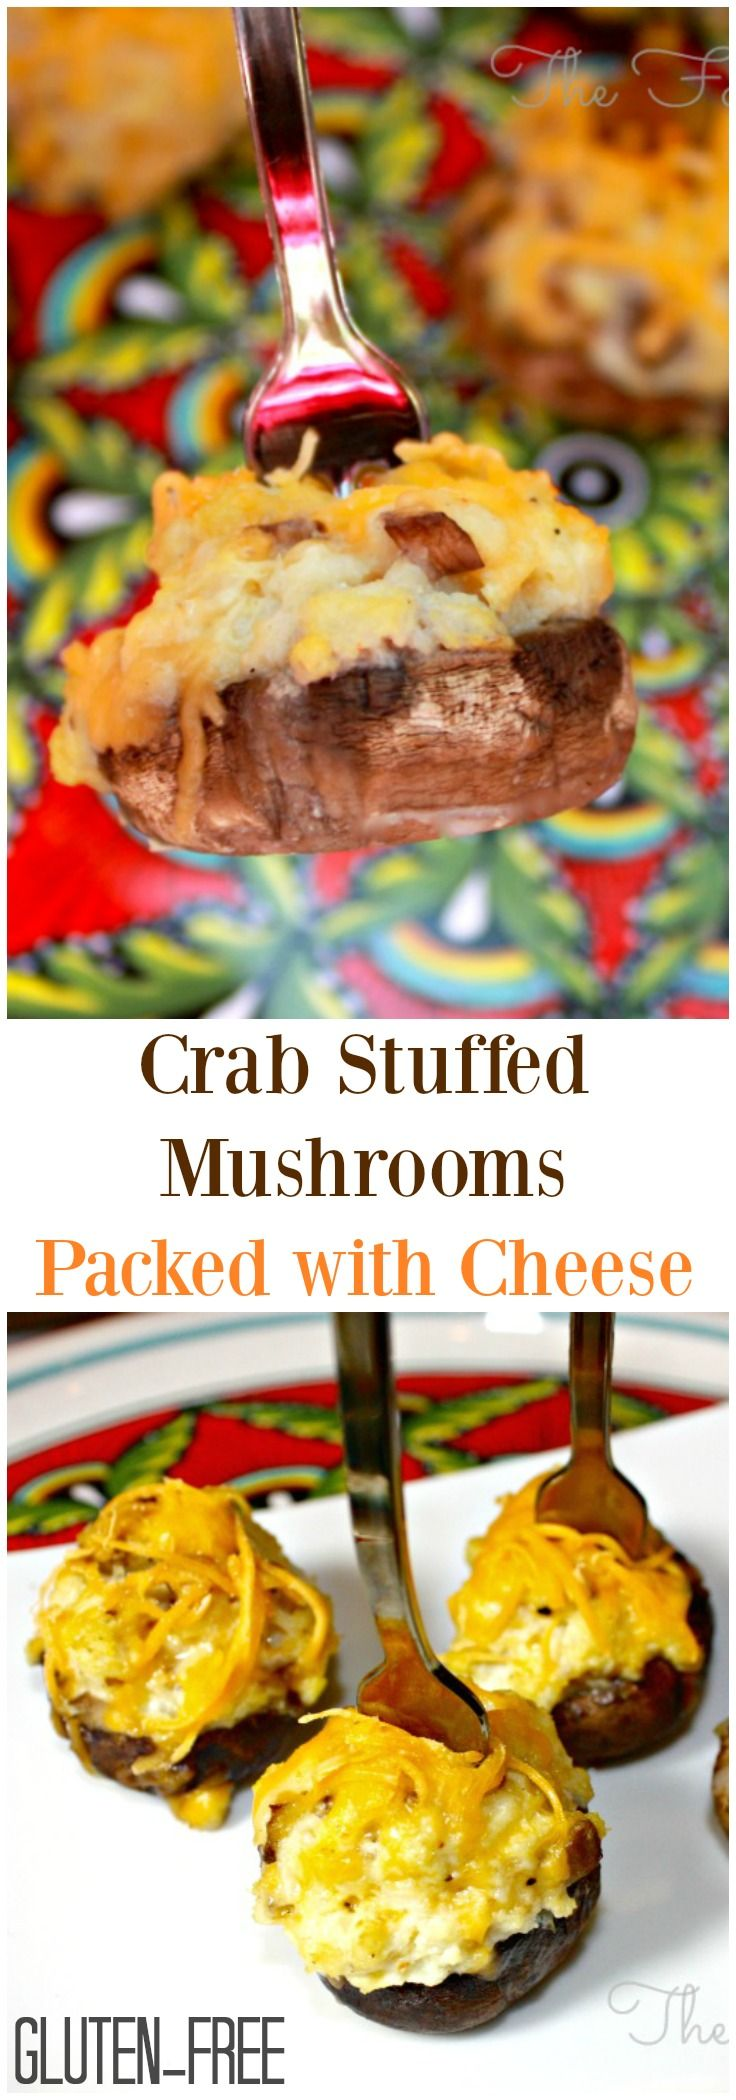 Crab stuffed mushrooms packed with cheese are delectable on their own for any occasion, but serve it with some bubbly for a festive touch! #Appetizer #Crab #Mushrooms